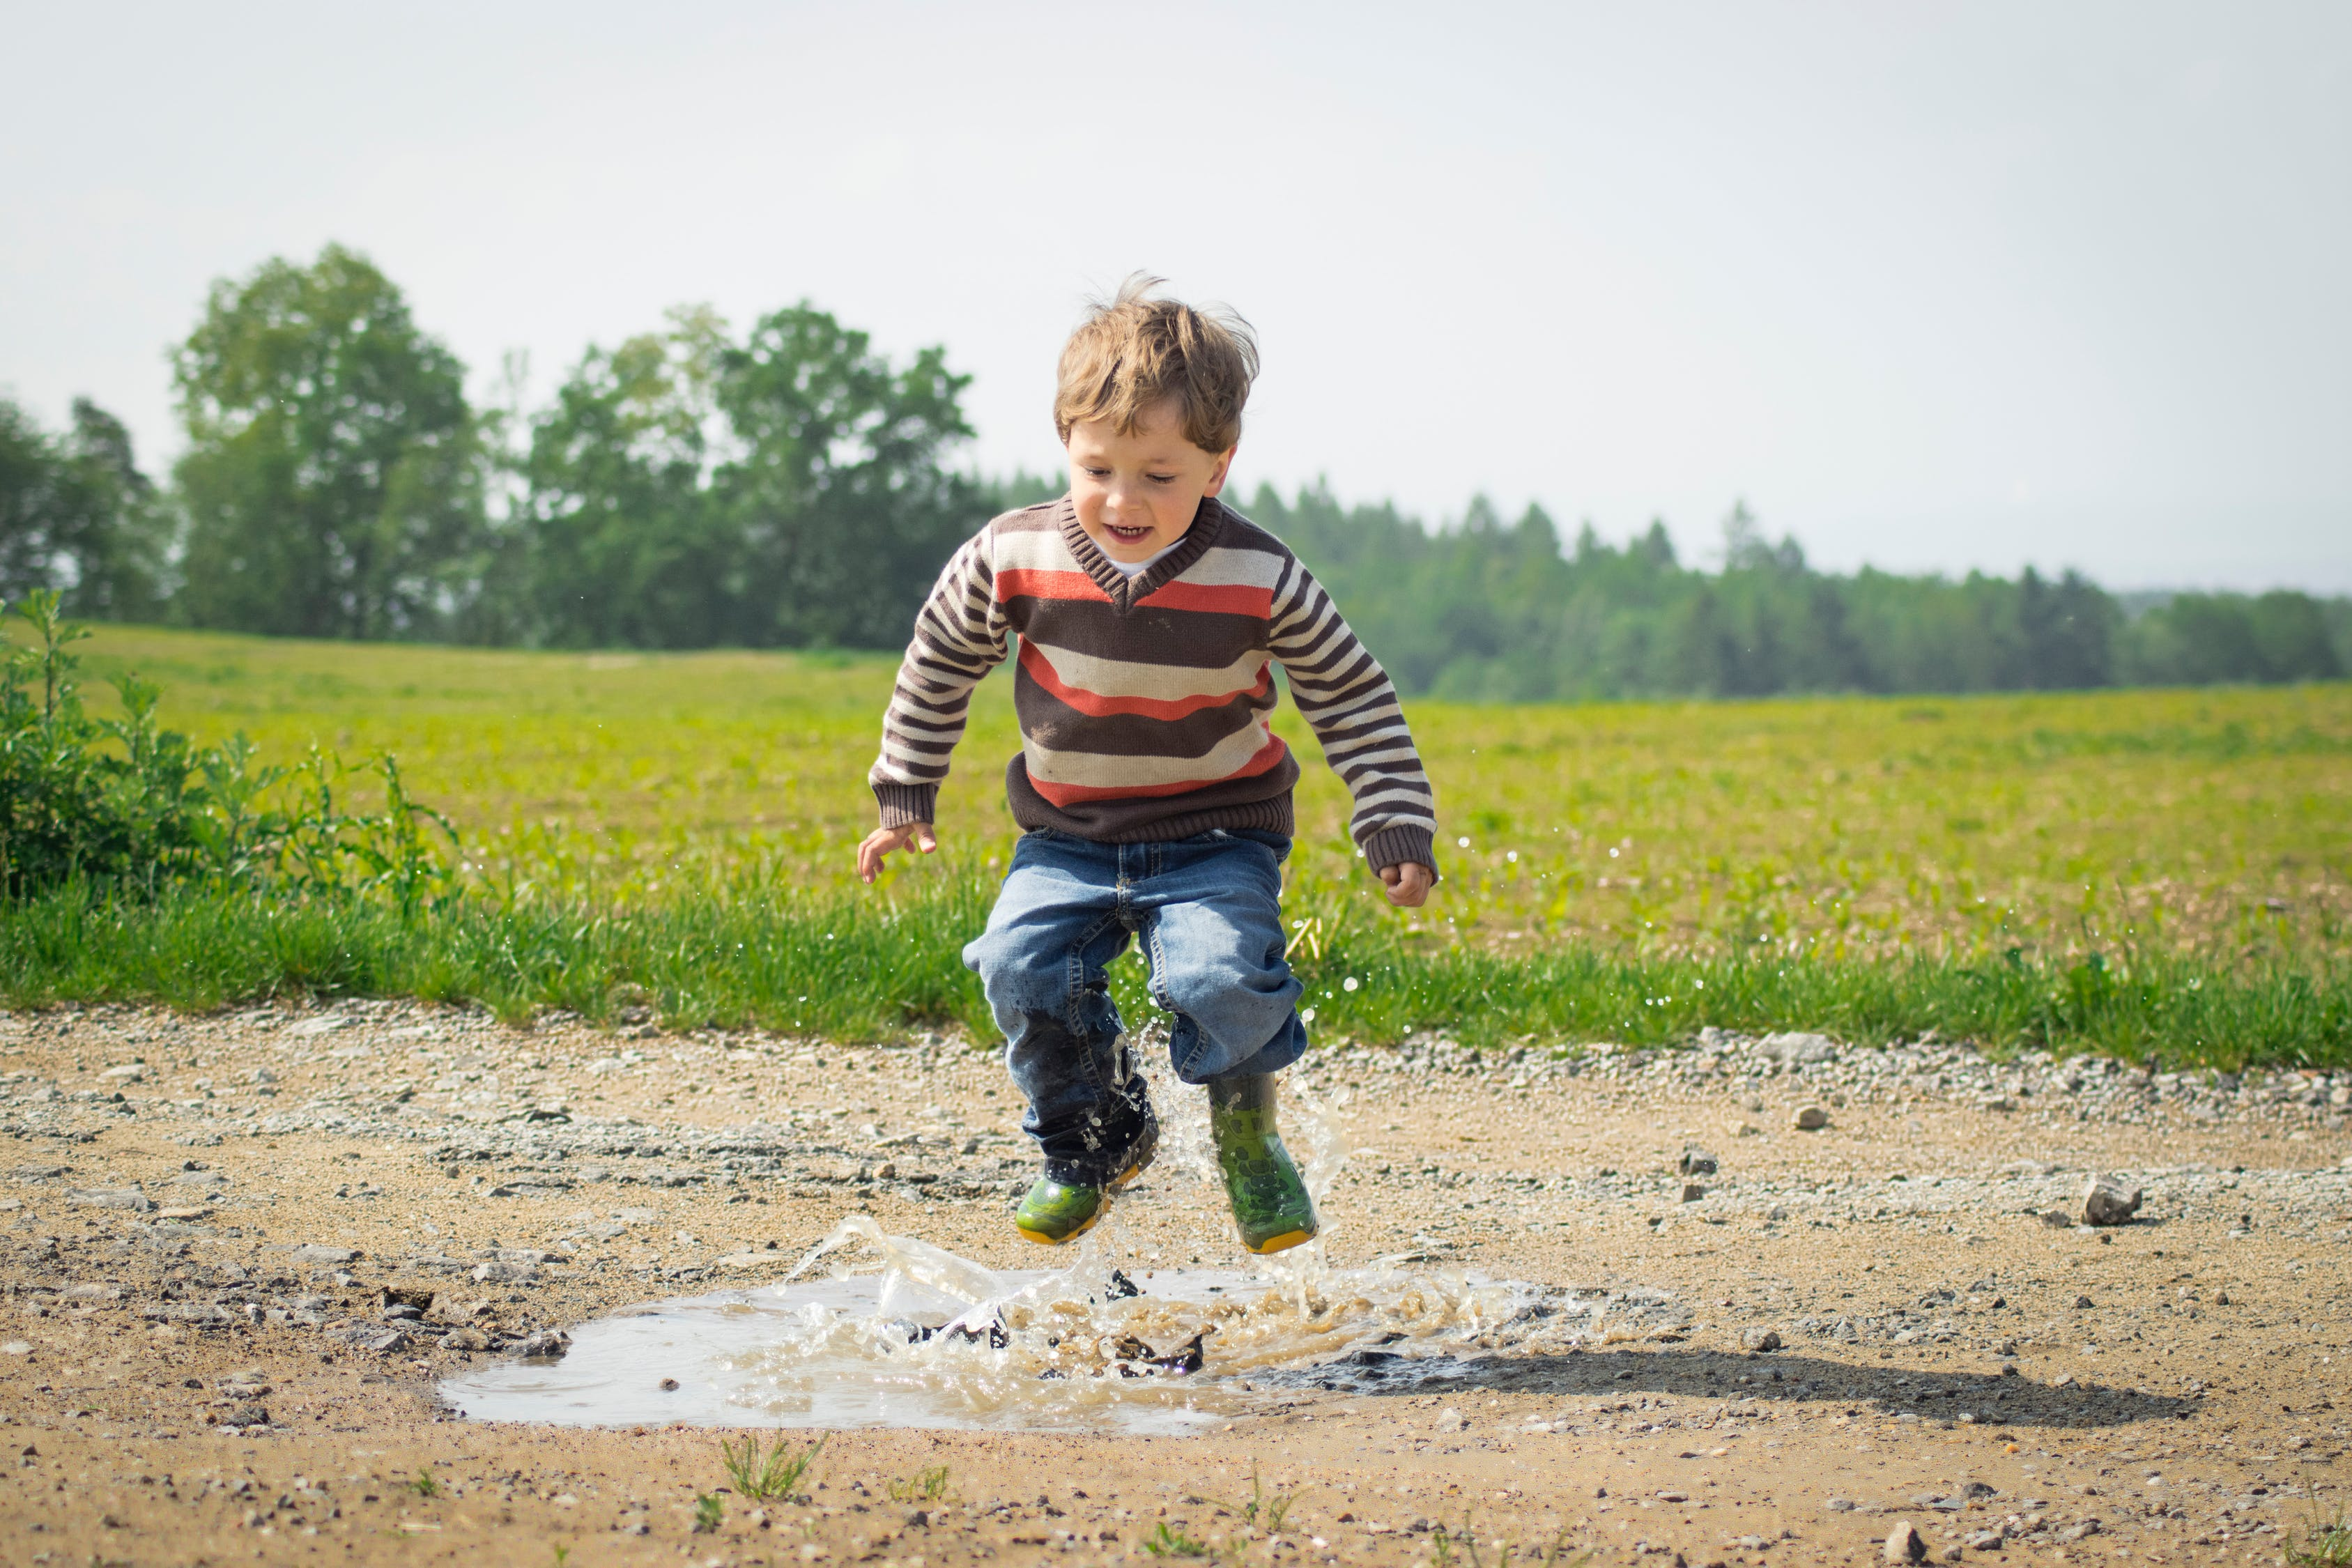 Child playing on a puddle